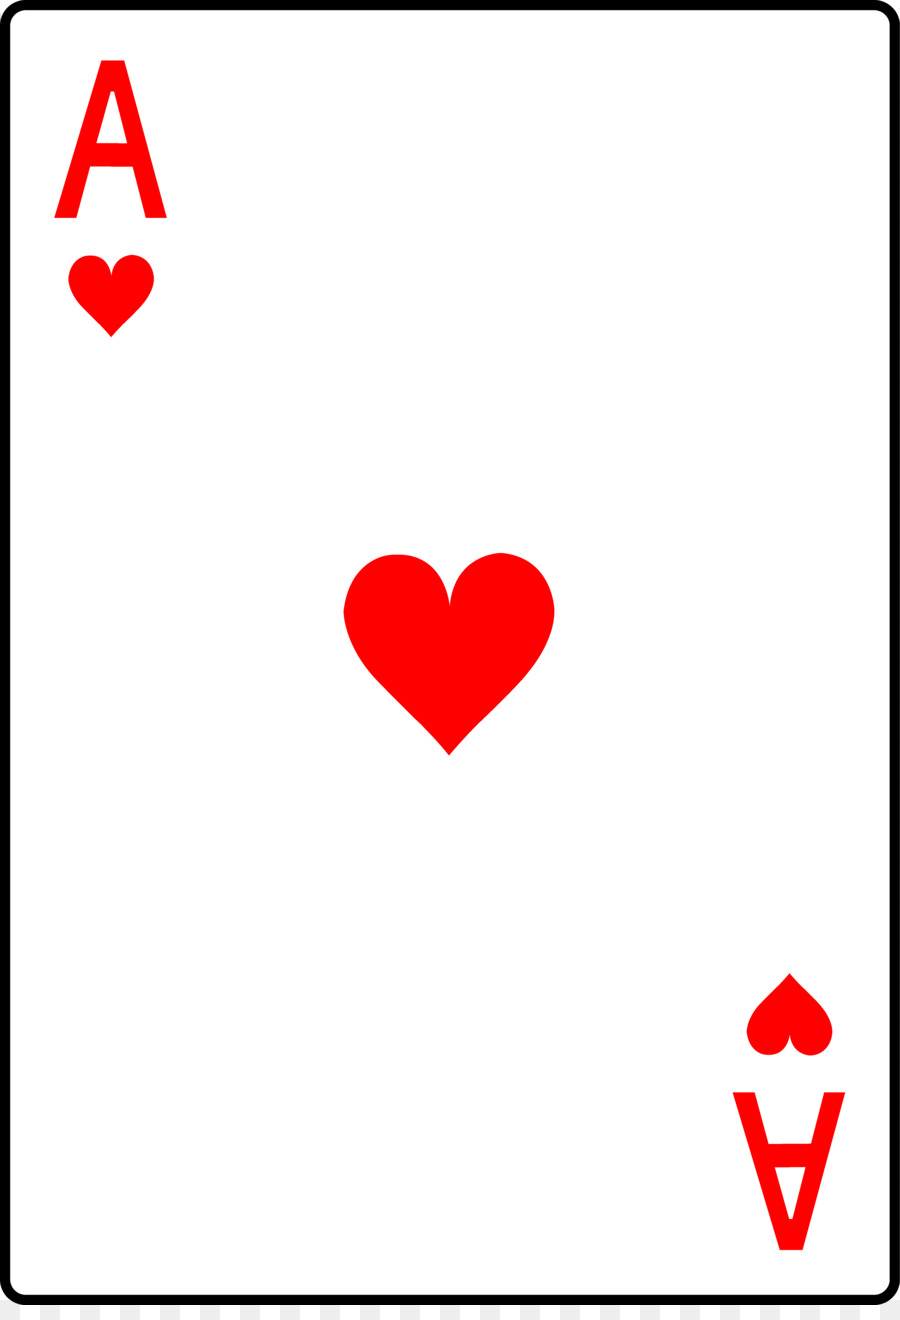 playing card ace of hearts onecard suit heart playing